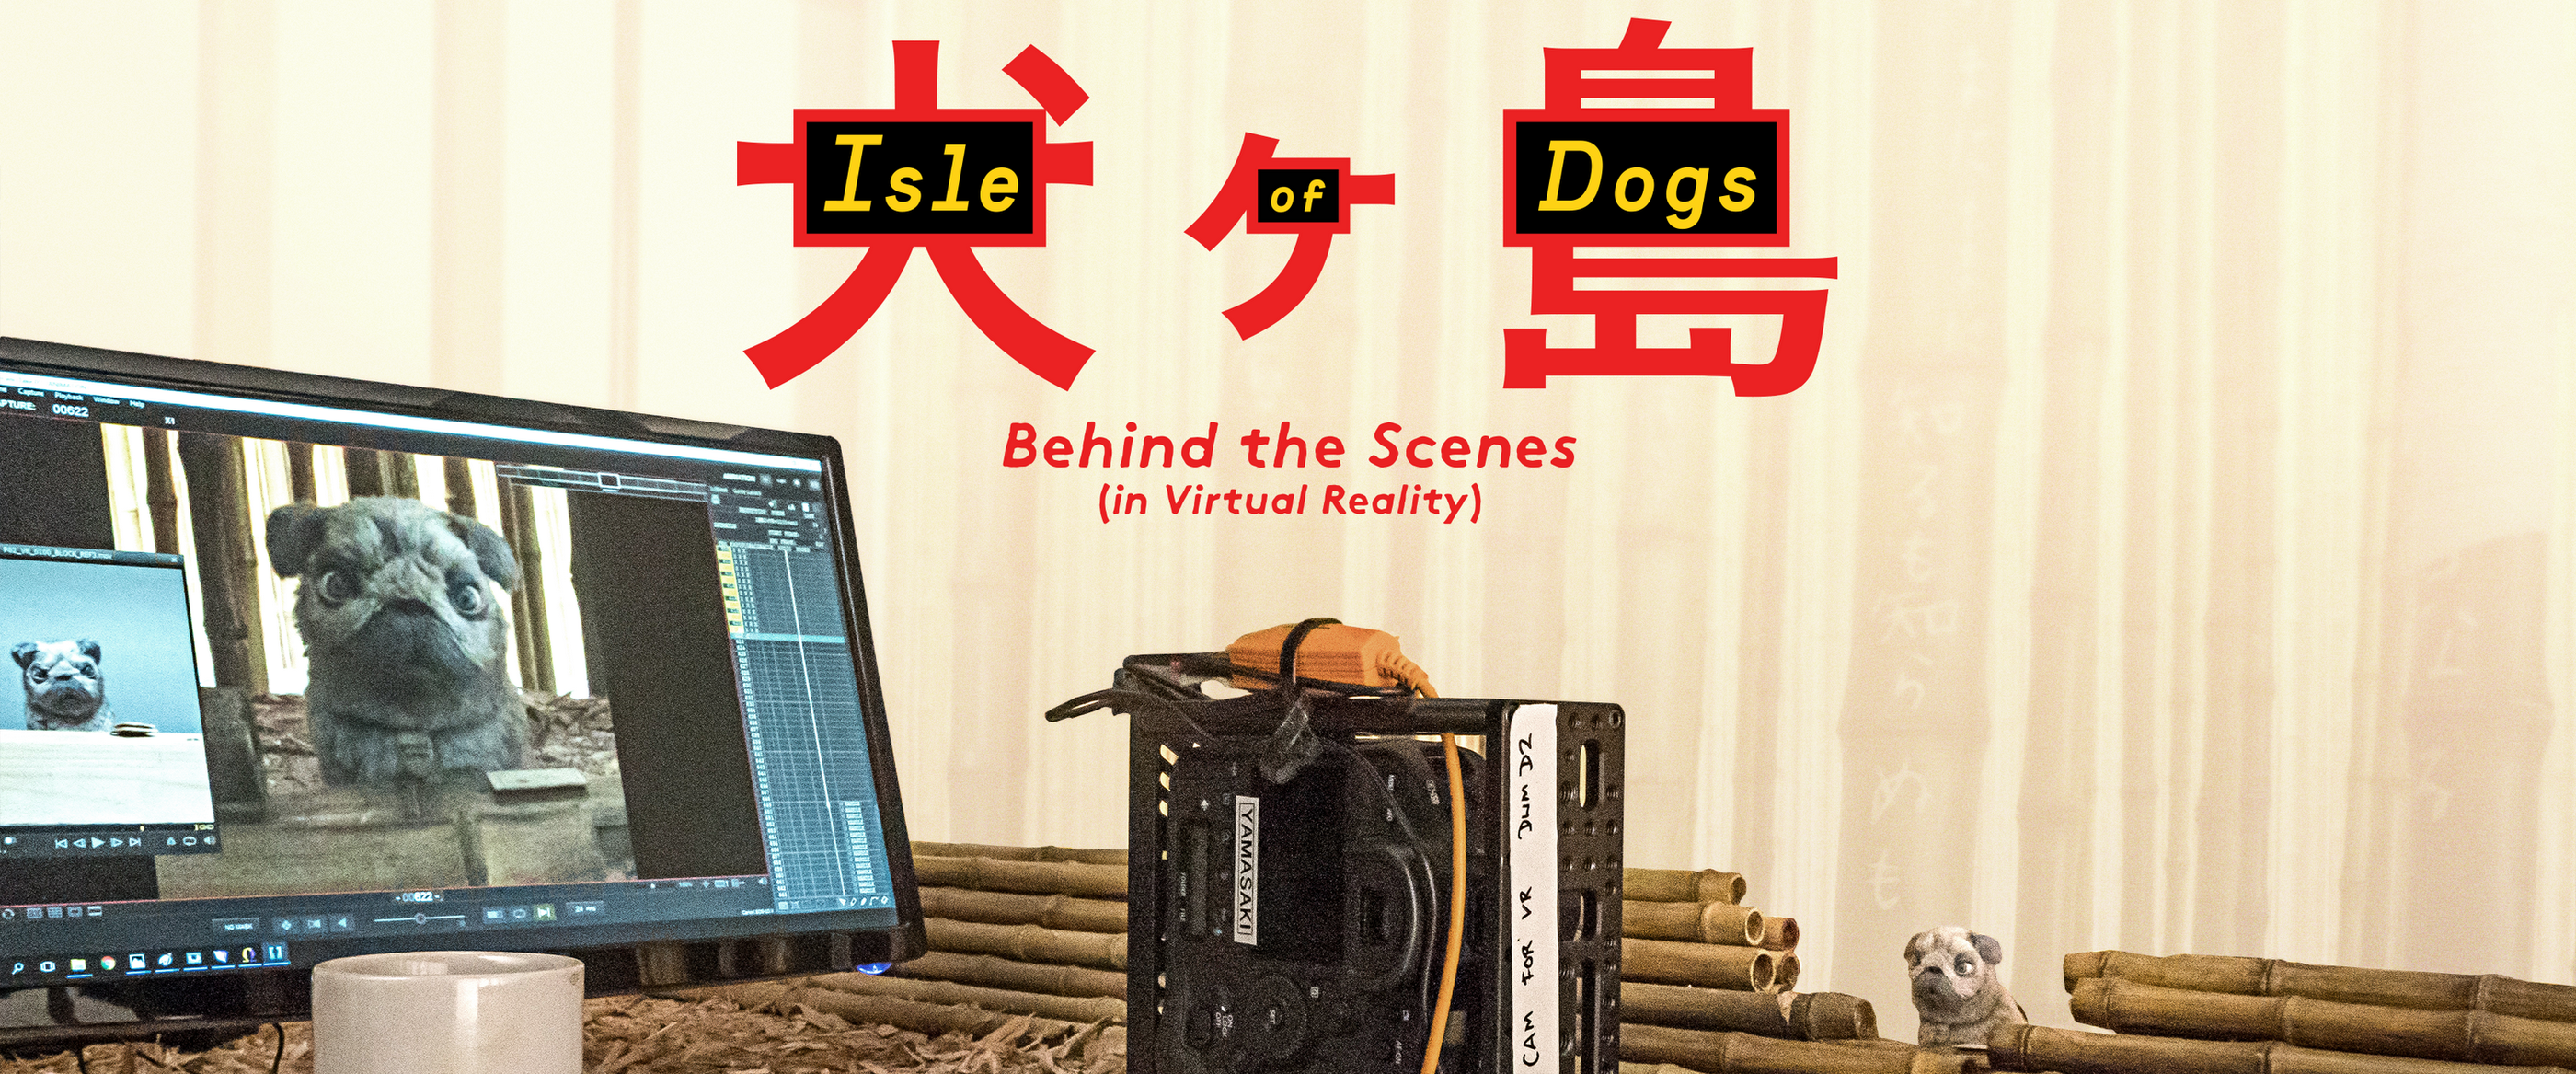 Isle of Dogs in virtual reality hero B